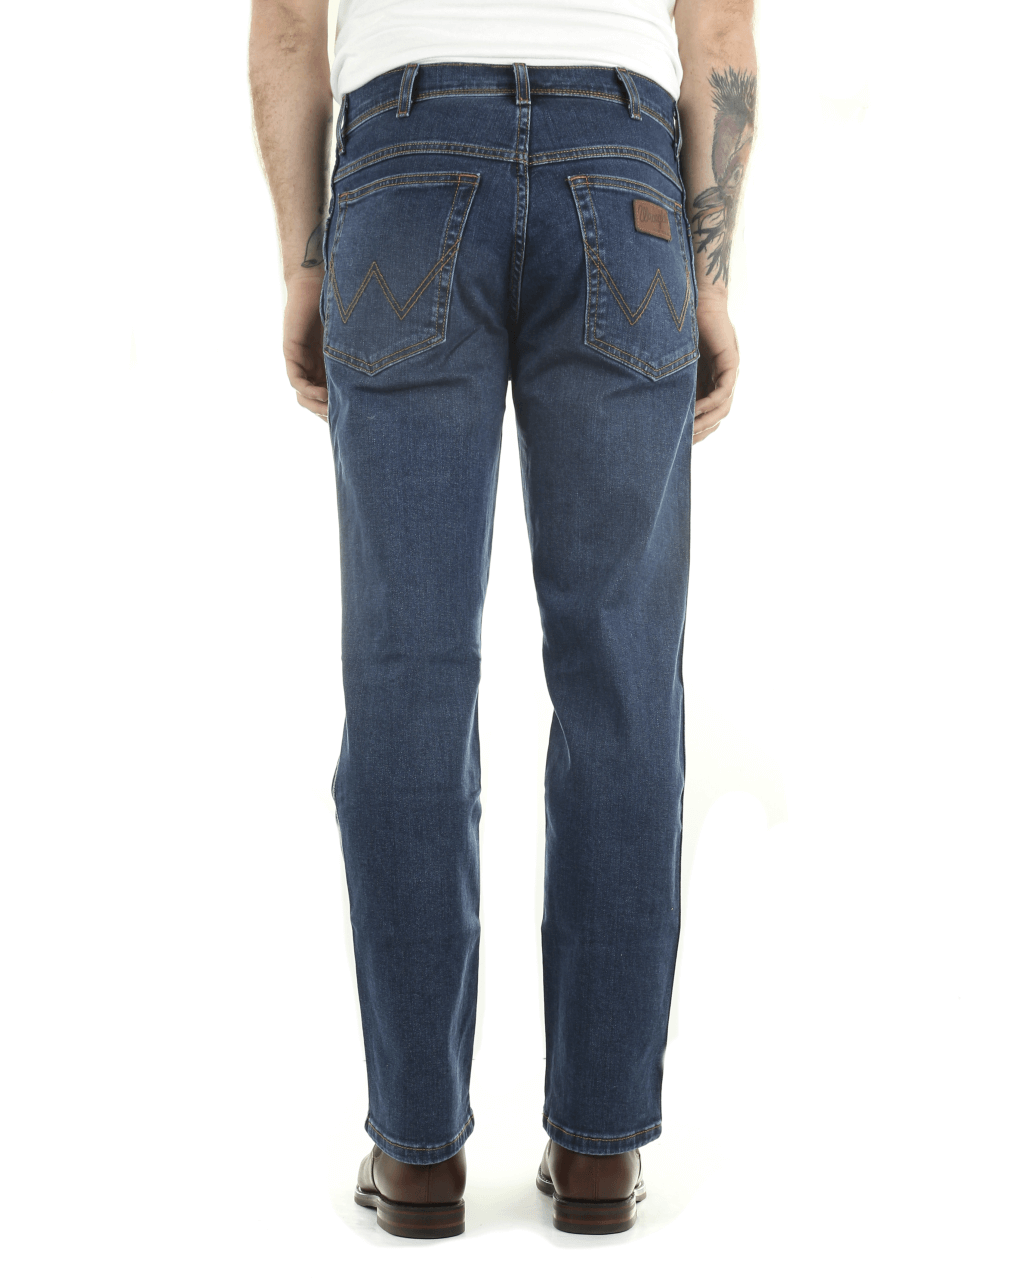 new arrivals dbd88 09019 Wrangler Texas Stretch Original Fit Mens Jeans - Darkstone ...